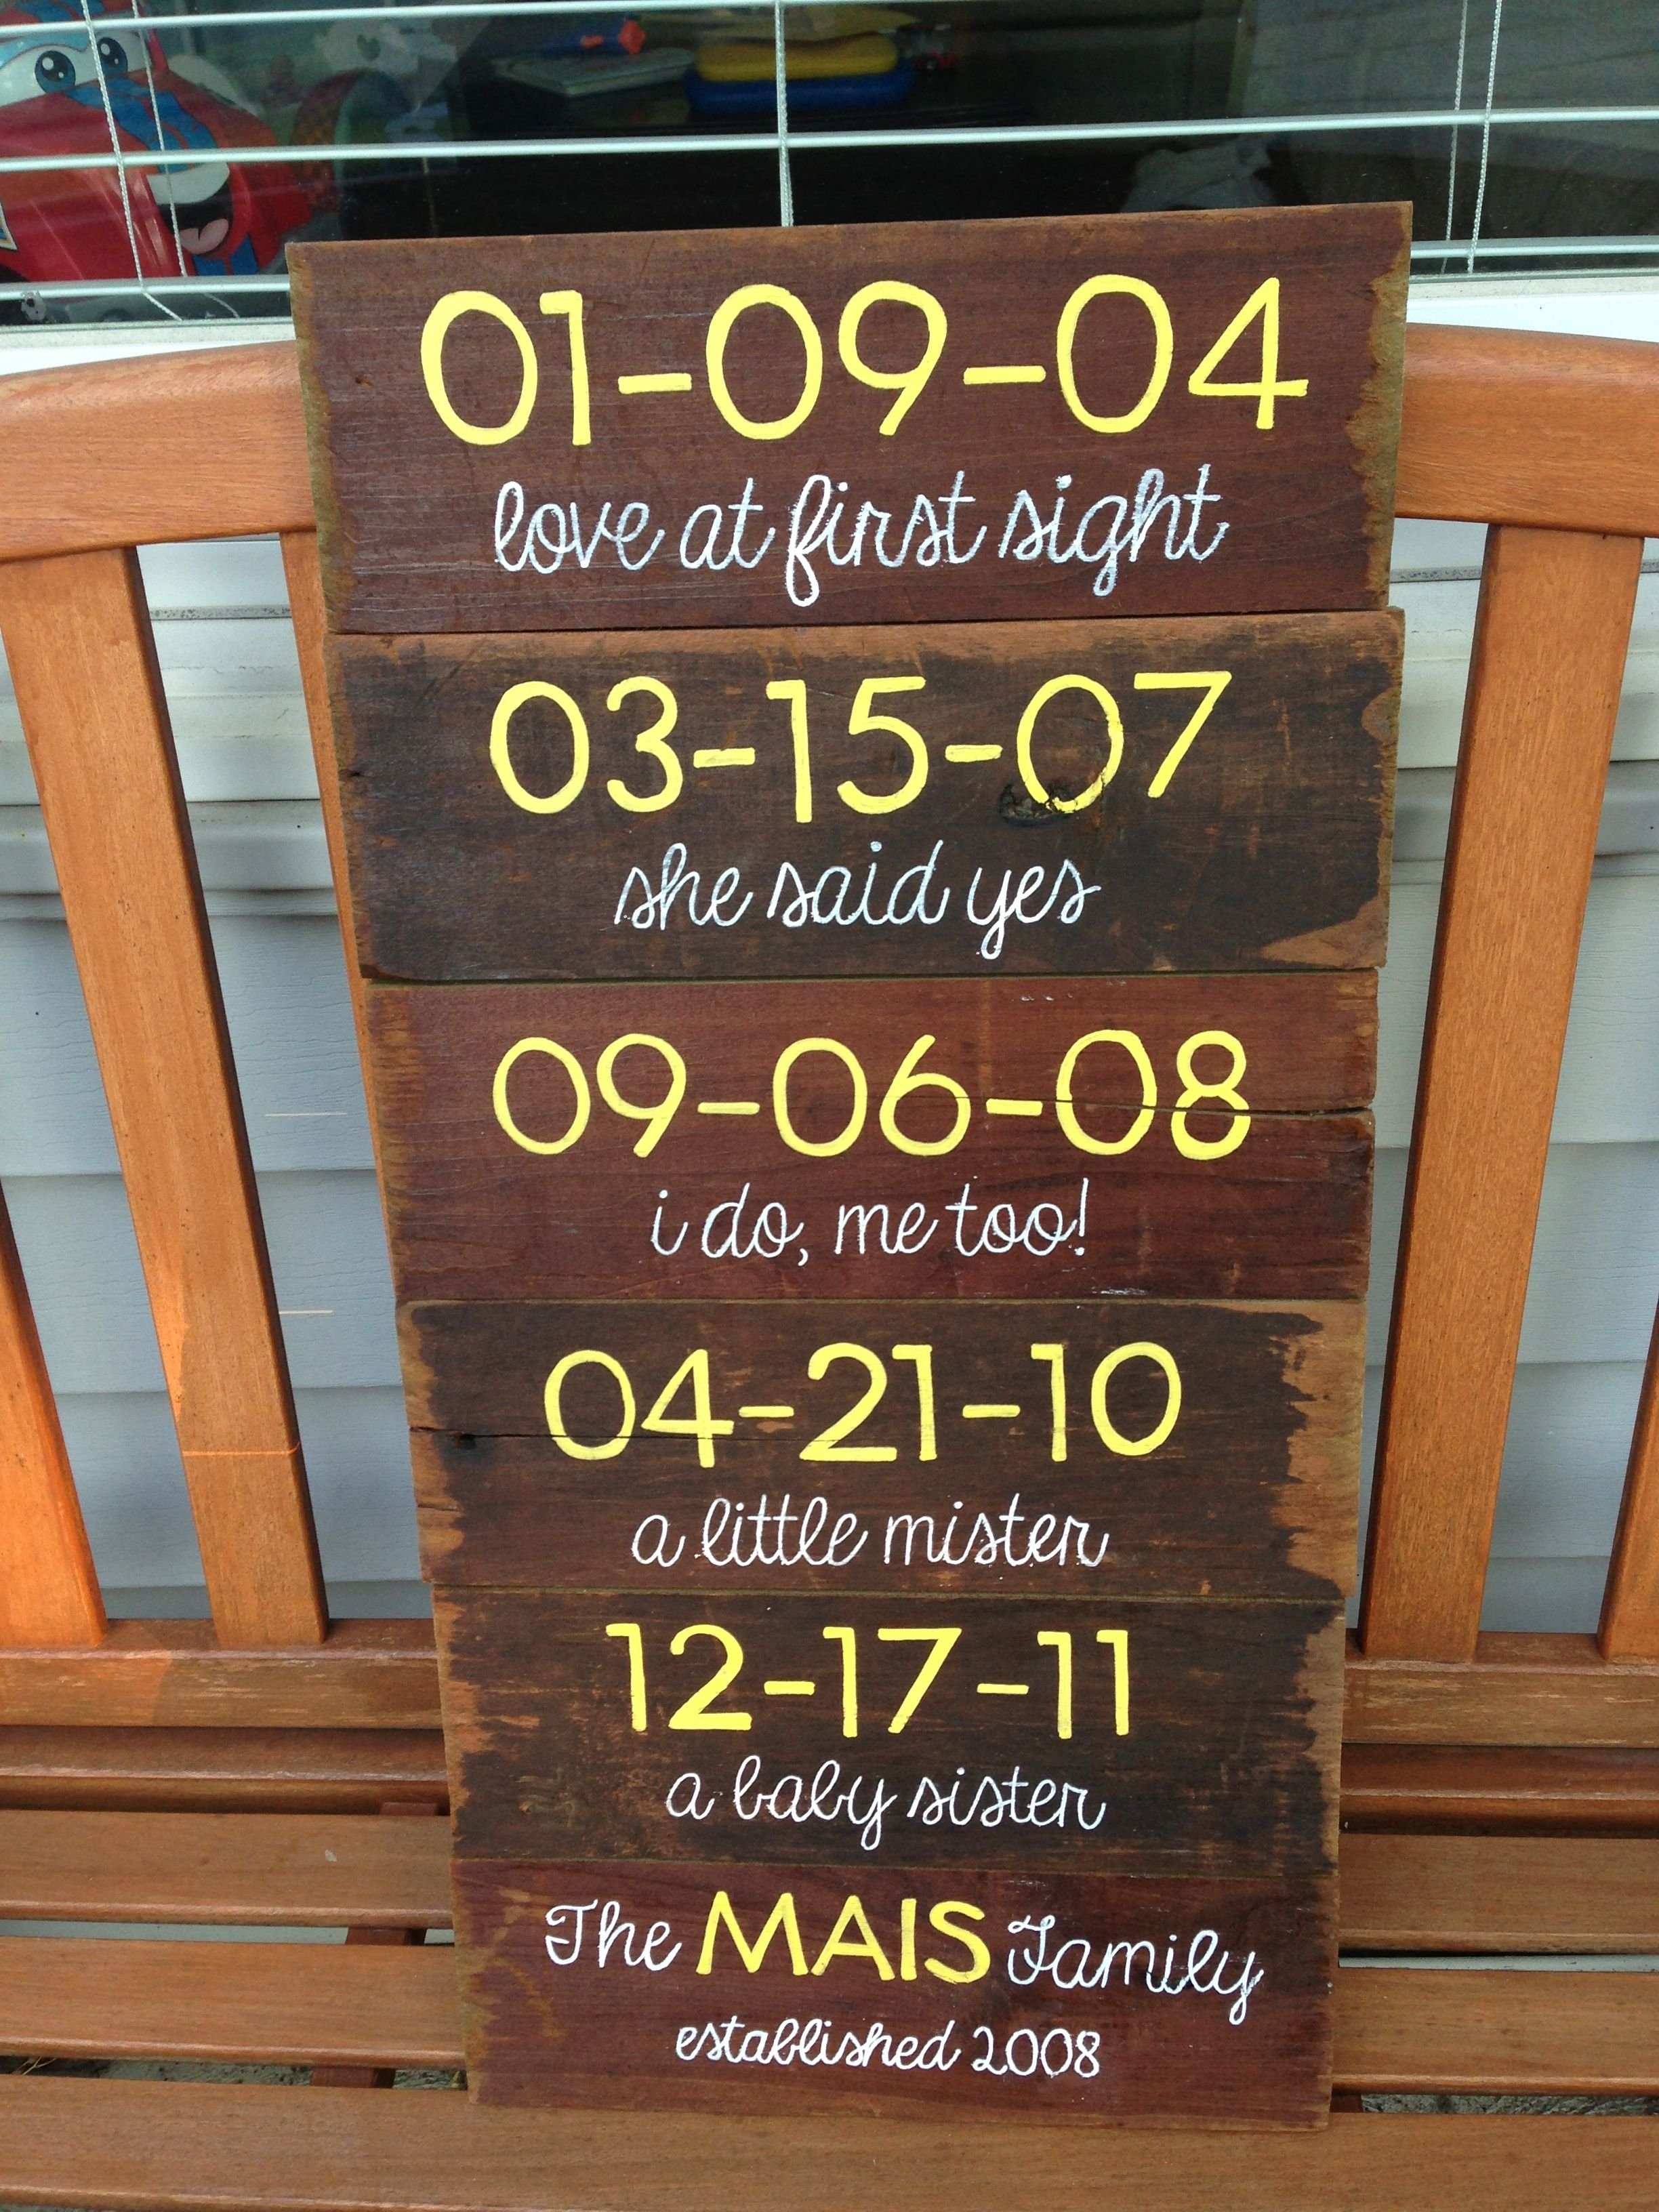 10 Stunning 5 Year Anniversary Ideas For Him 5 year anniversary gift wood panels with special dates crafty 11 2020